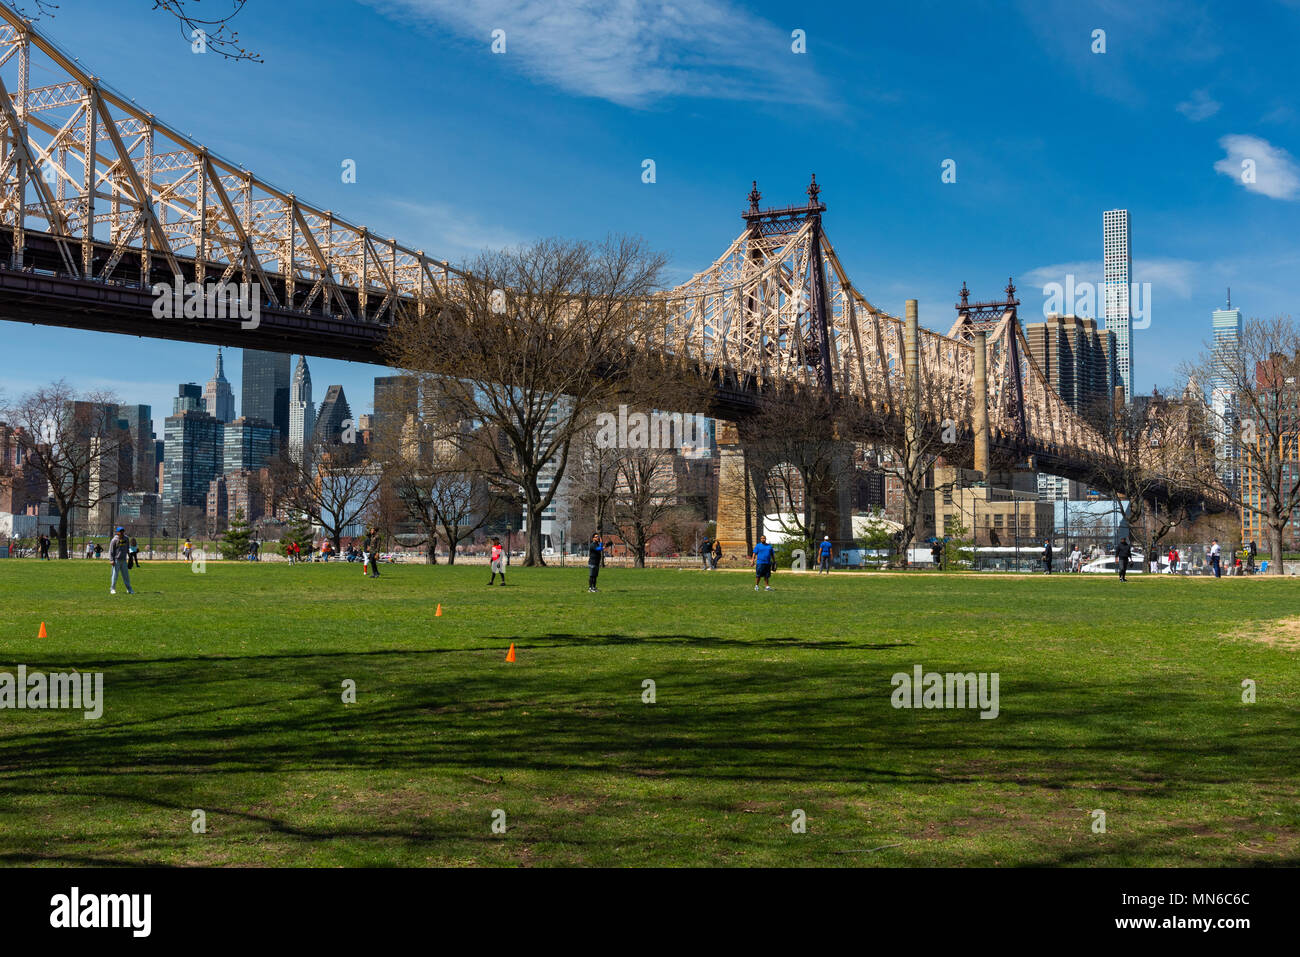 New York, USA -  April 21, 2018:  People playing baseball at Queensbridge Park in a sunny day. Ed Koch Queensboro Bridge in the background Stock Photo